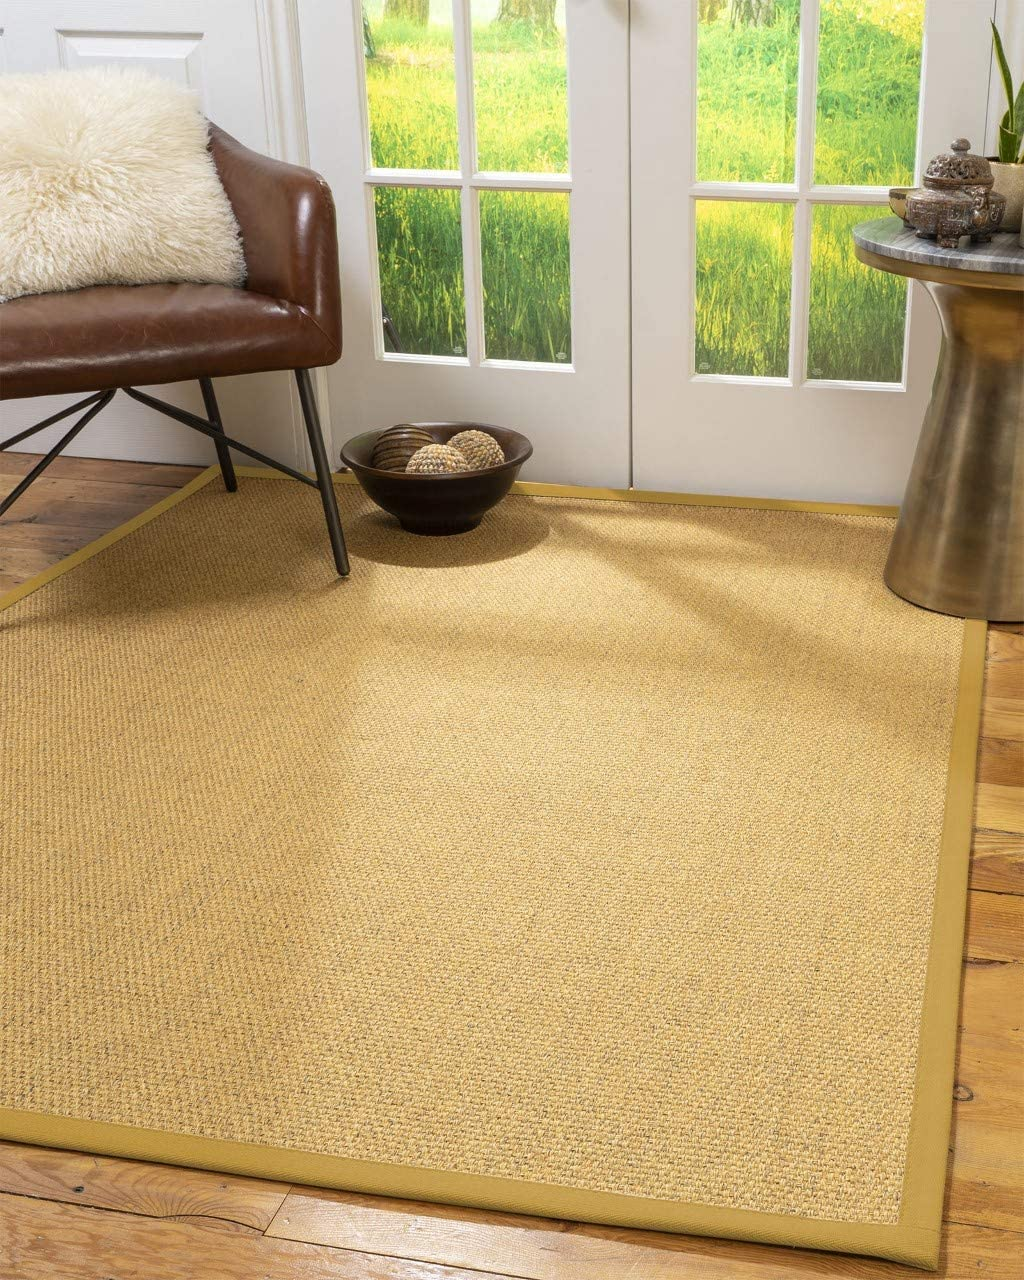 Natural Area Rugs Avondale, Beige Sisal Rug, 8 x 10 , Extra Wide Tan Border